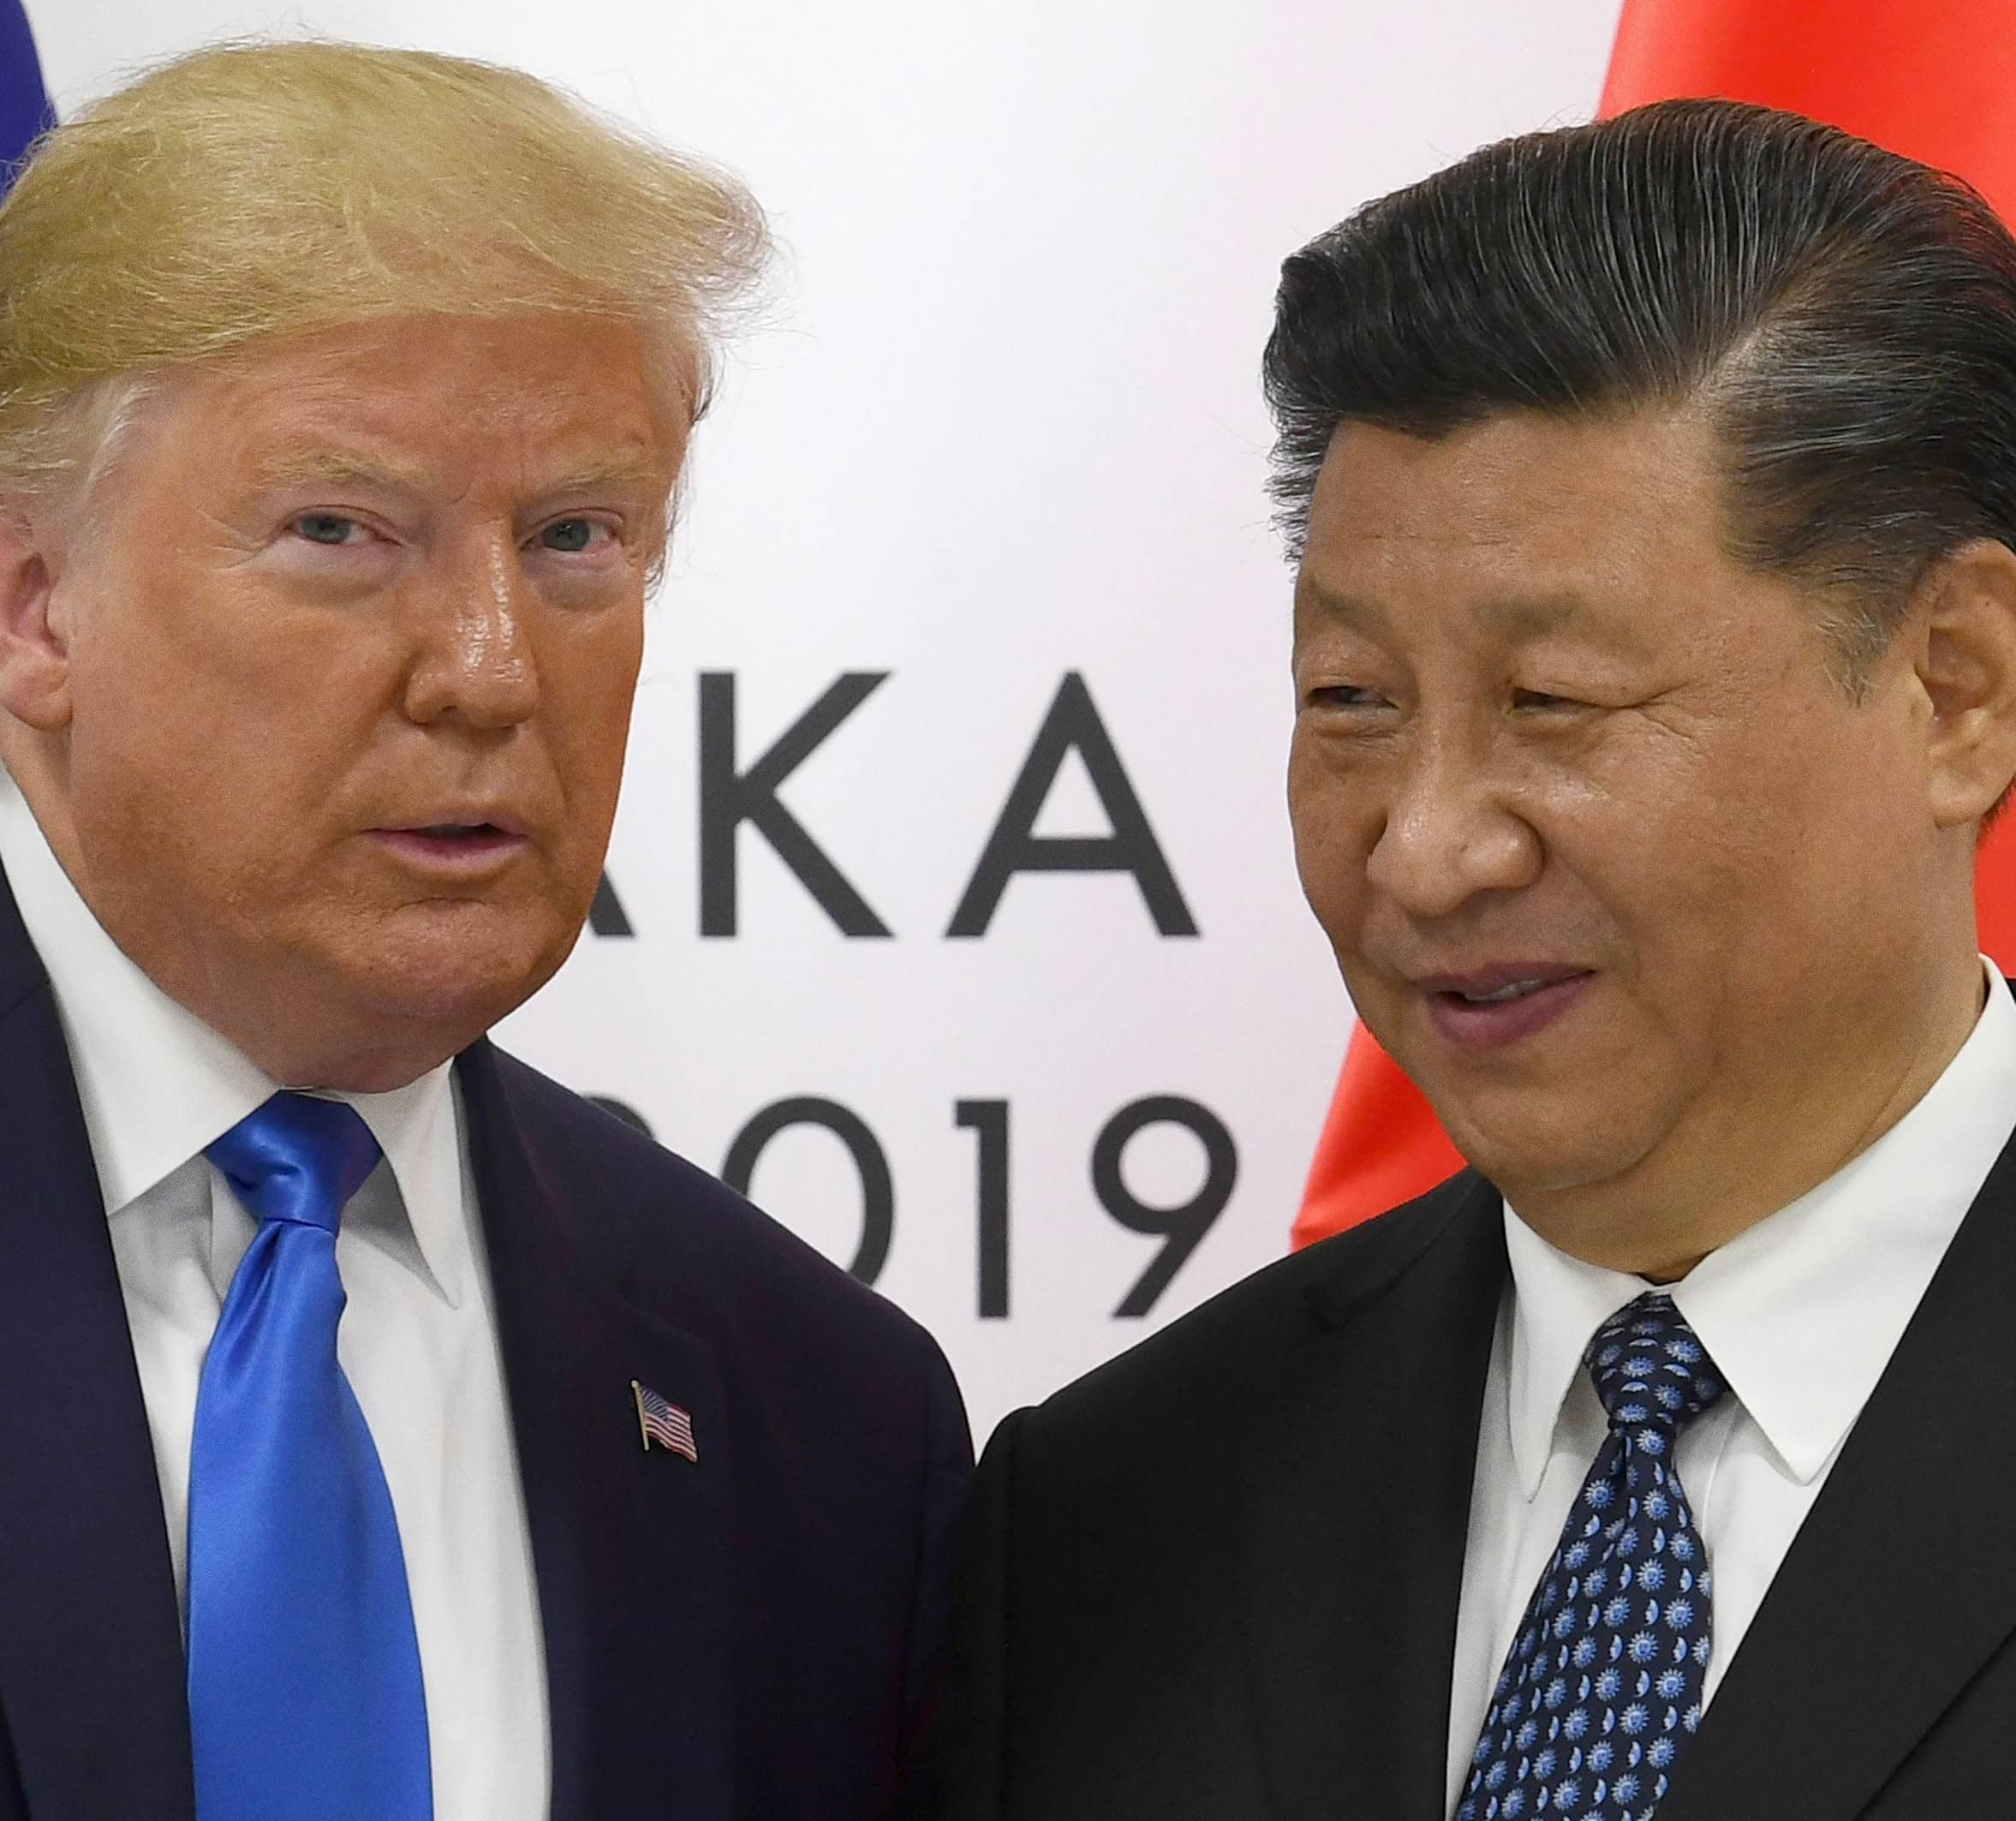 CHINA BATS AWAY RUMORS, SAYS TRADE TALKS WITH US CONTINUE